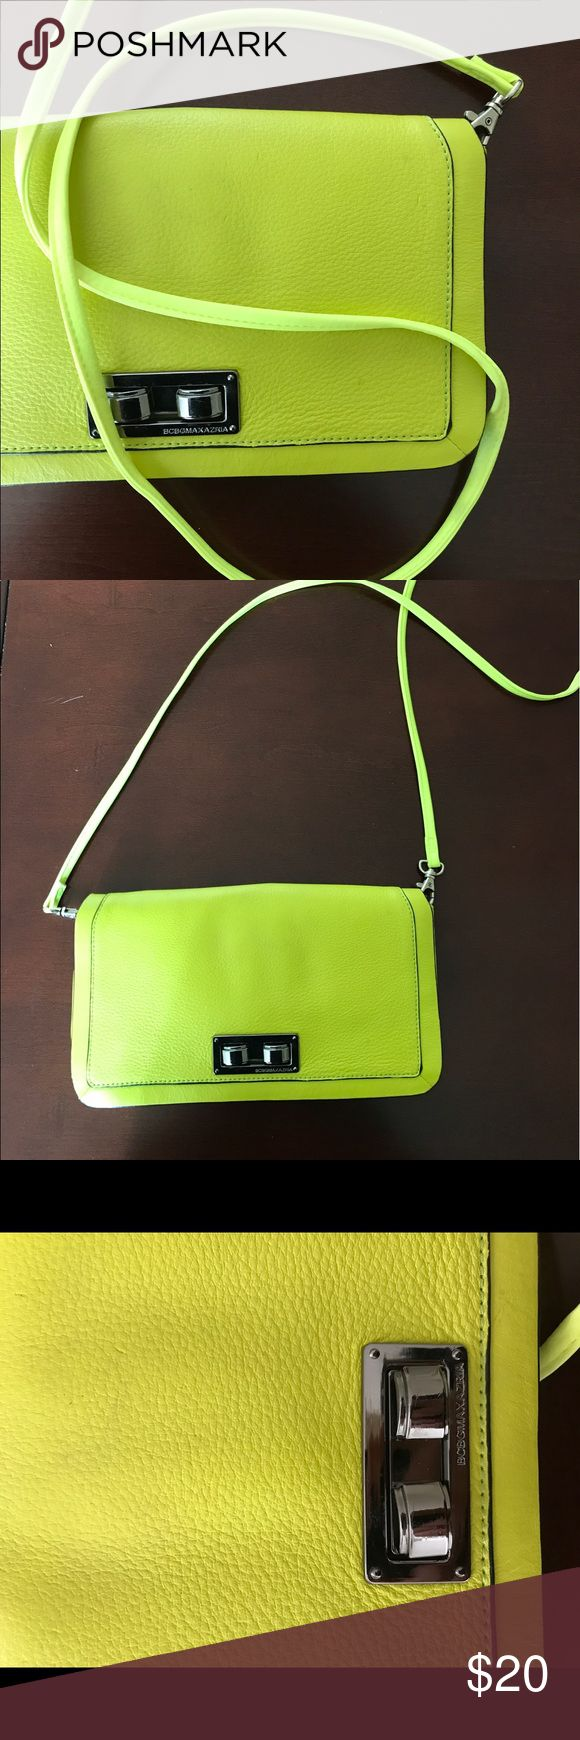 BCBG neon clutch Neon clutch with 2 compartments and 1 zipper pocket. The strap is a slightly different color (brighter). There are a couple scratches on it. BCBG Bags Clutches & Wristlets